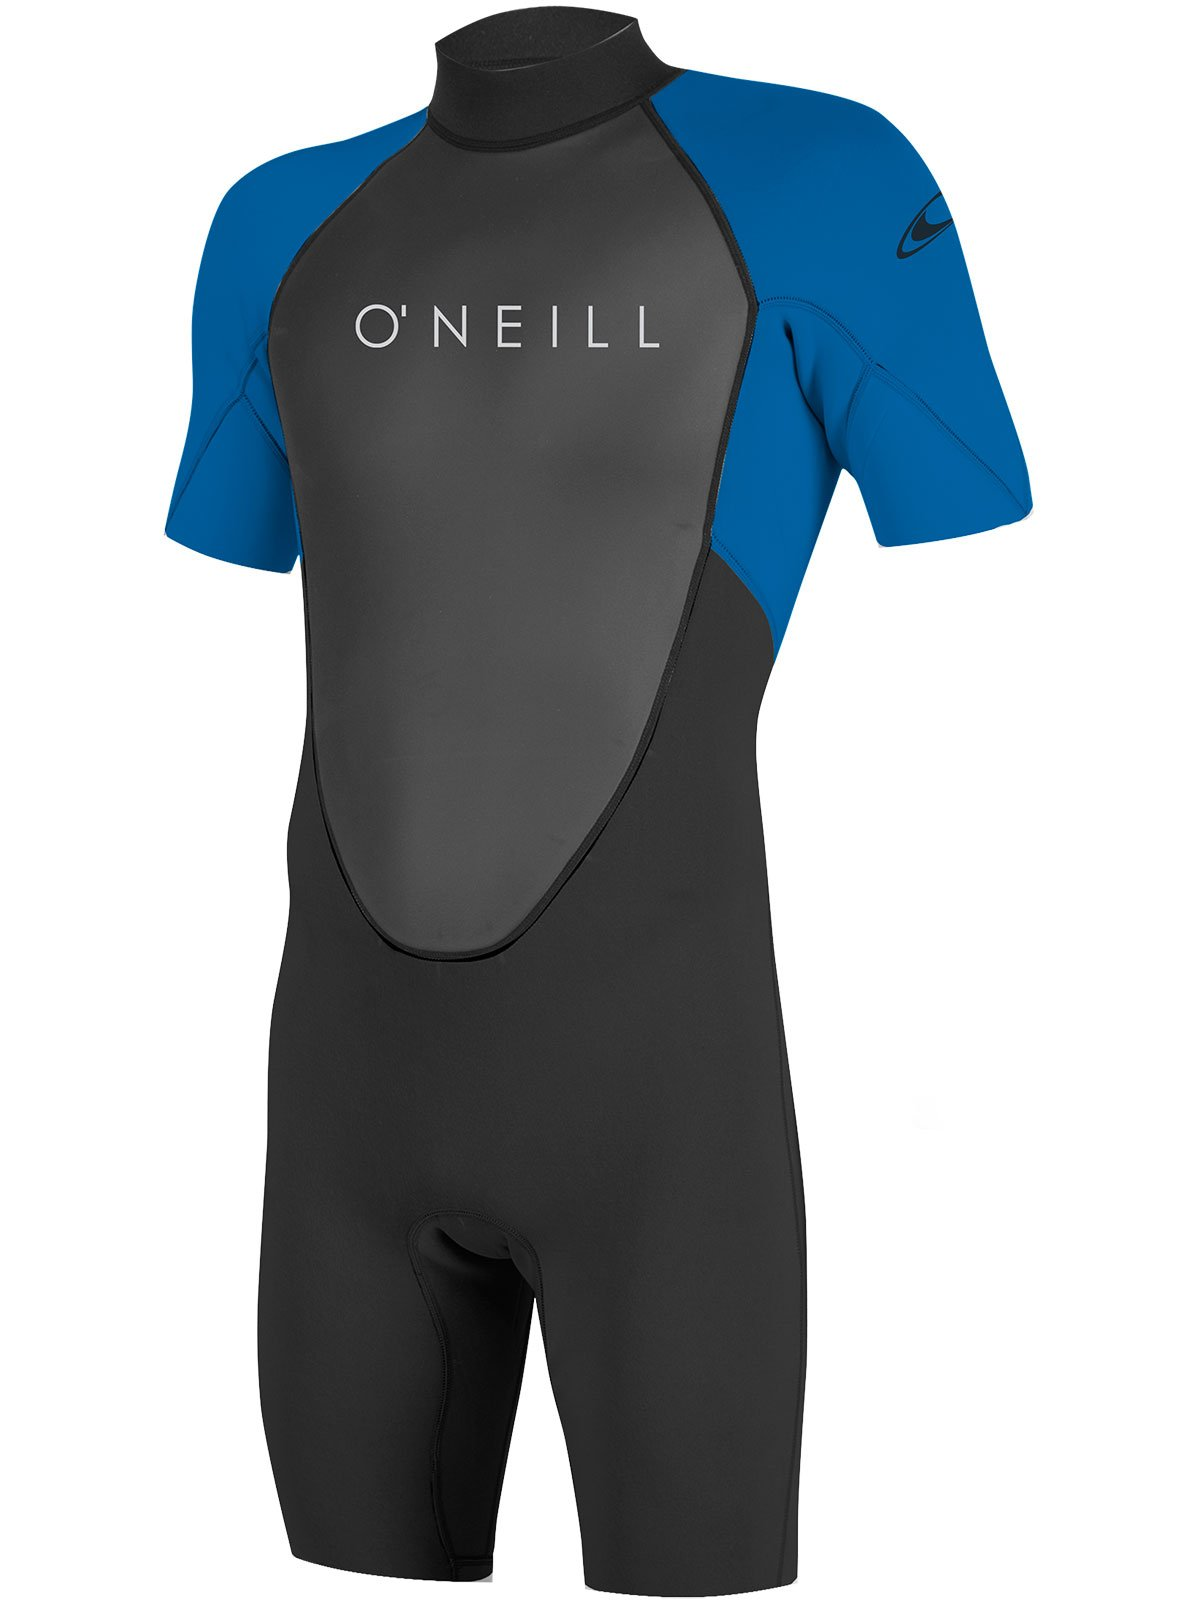 O'Neill Youth Reactor-2 2mm Back Zip Short Sleeve Spring Wetsuit, Black/Ocean, 4 by O'Neill Wetsuits (Image #1)